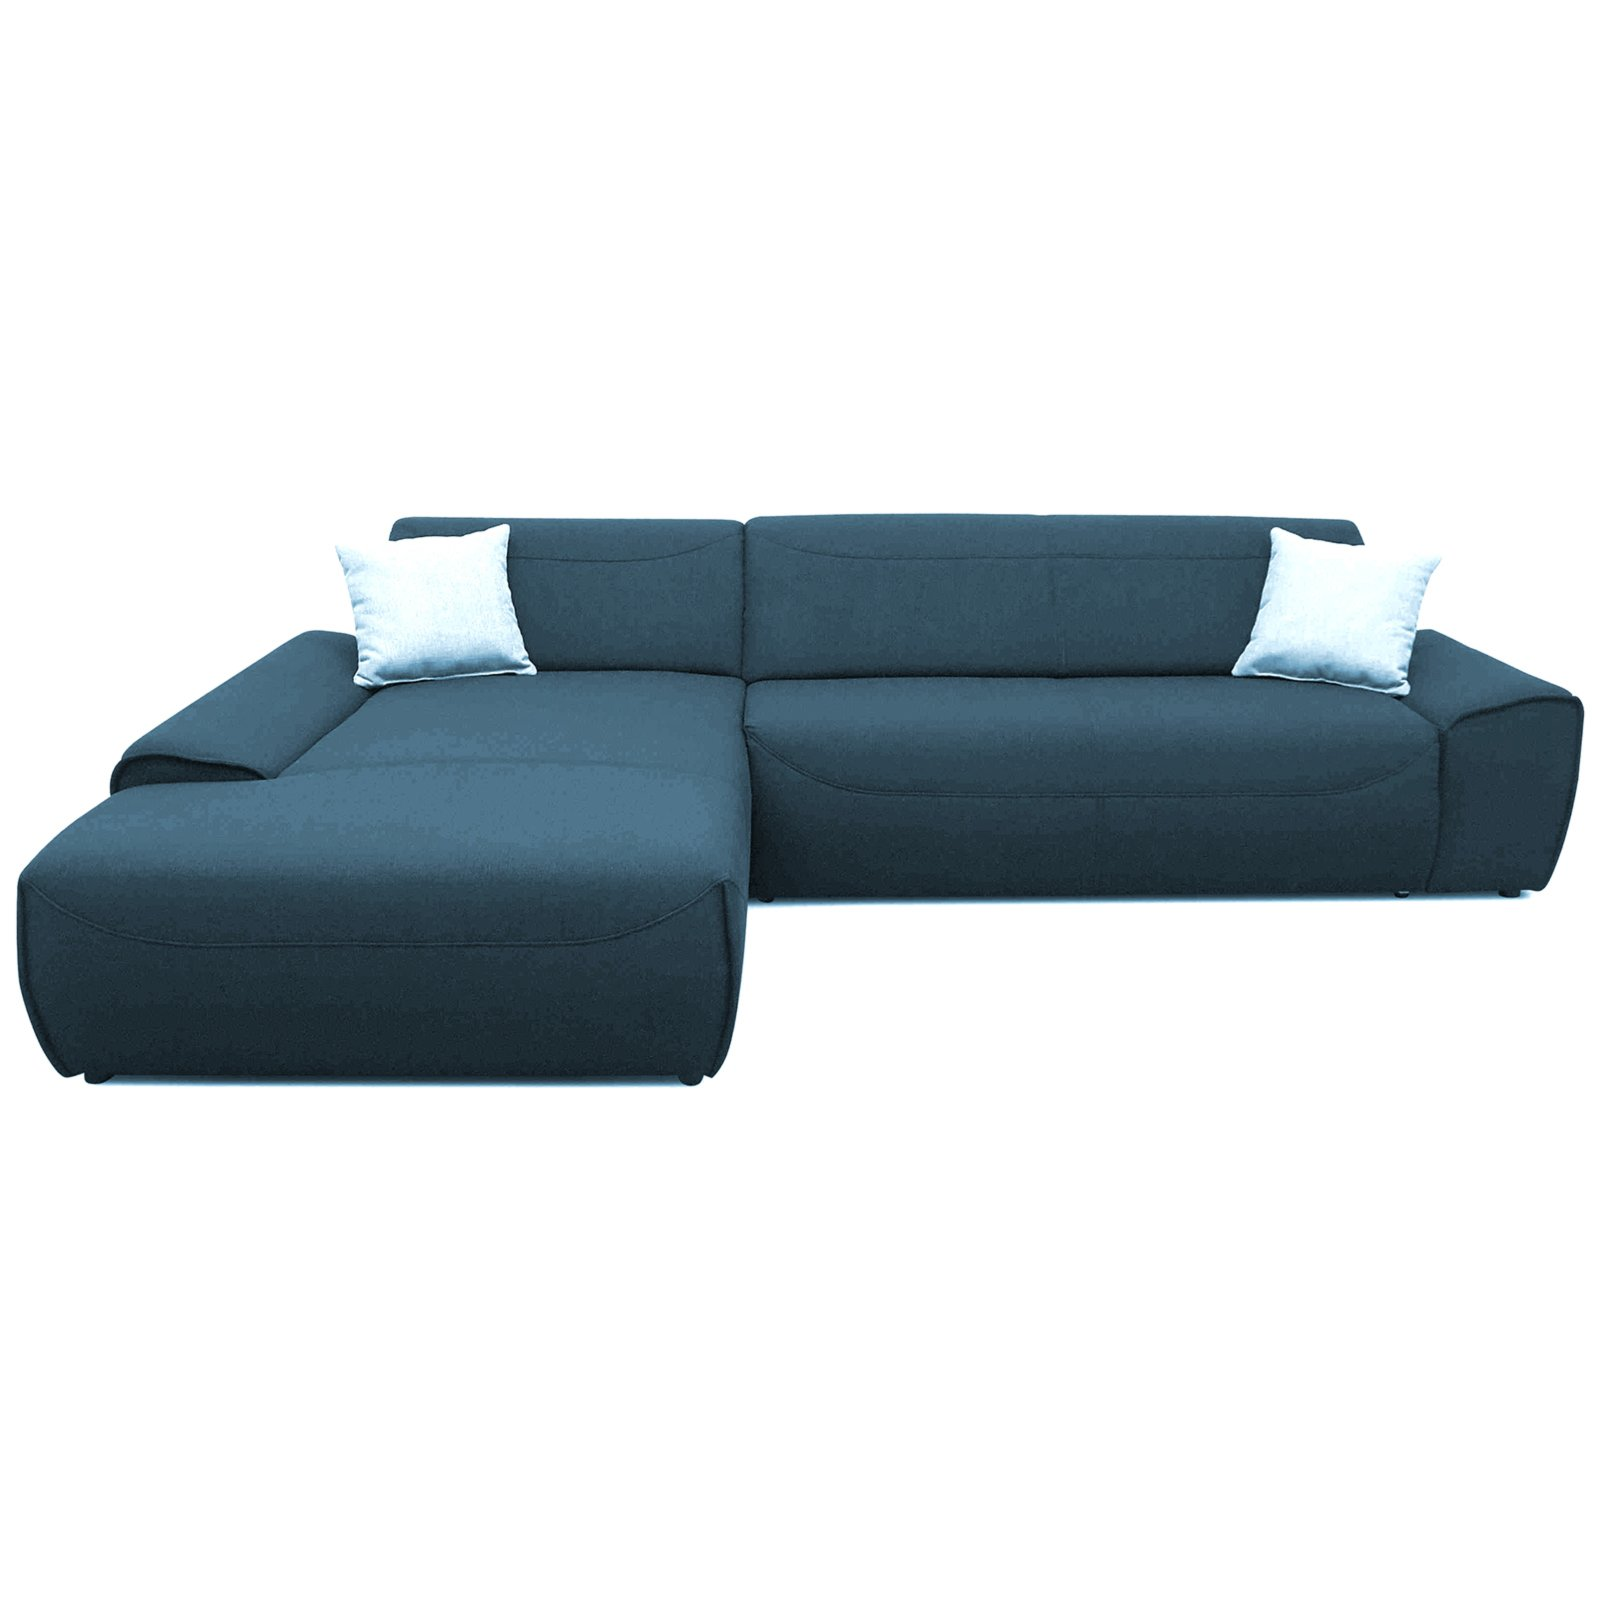 Ecksofa petrol recamiere links ecksofas l form for Ecksofa 3 00 m